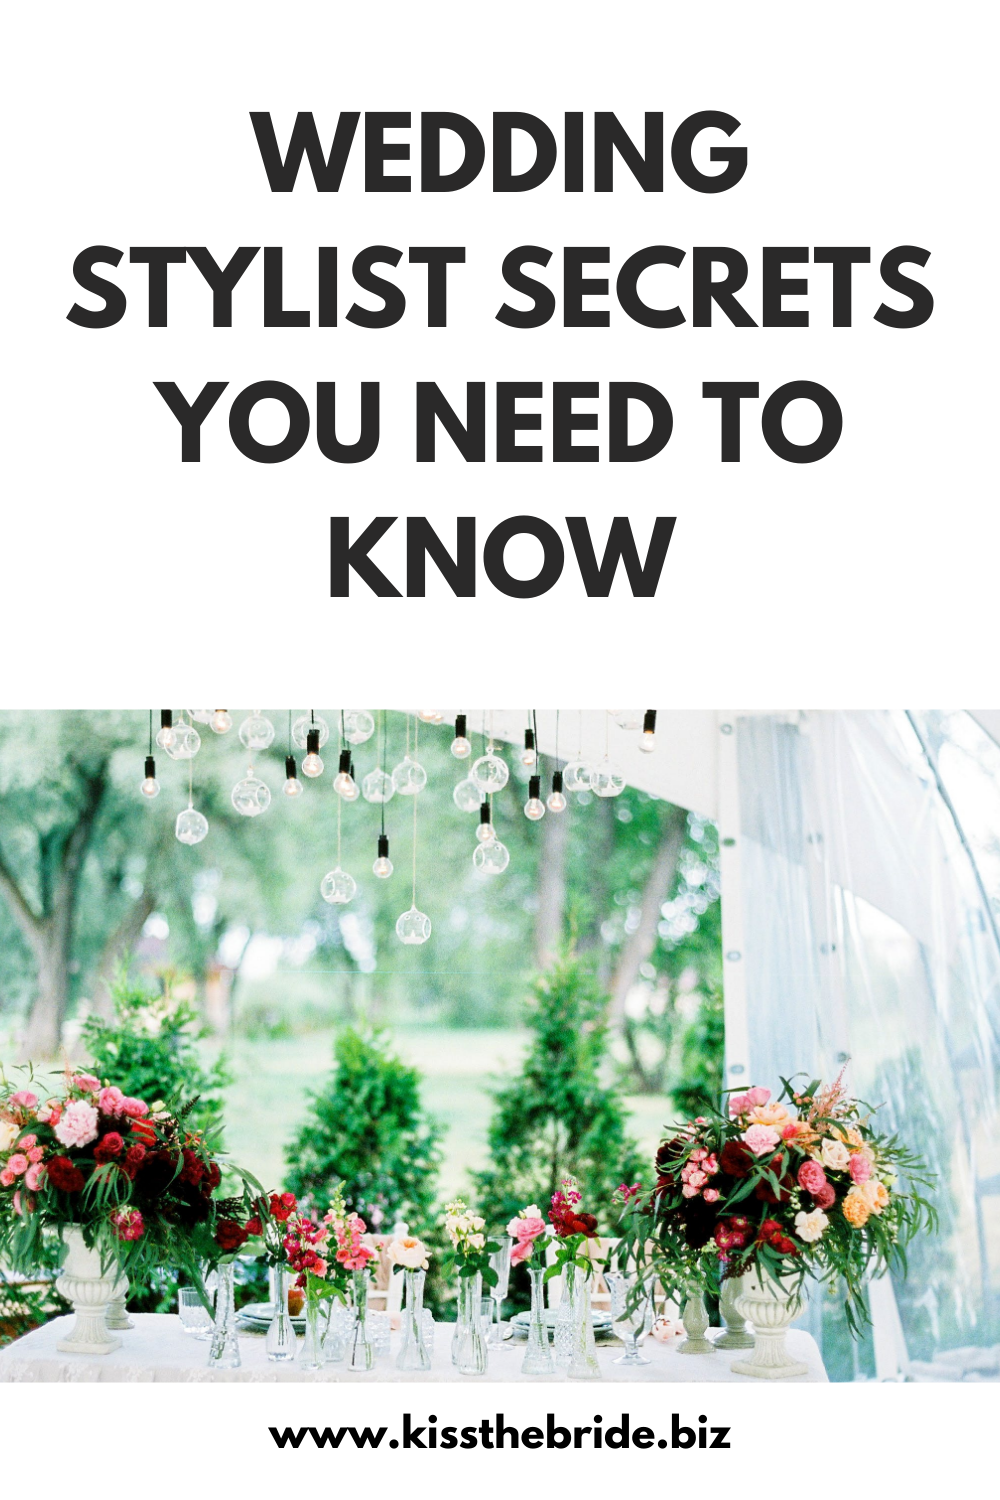 Wedding stylist tips and ideas